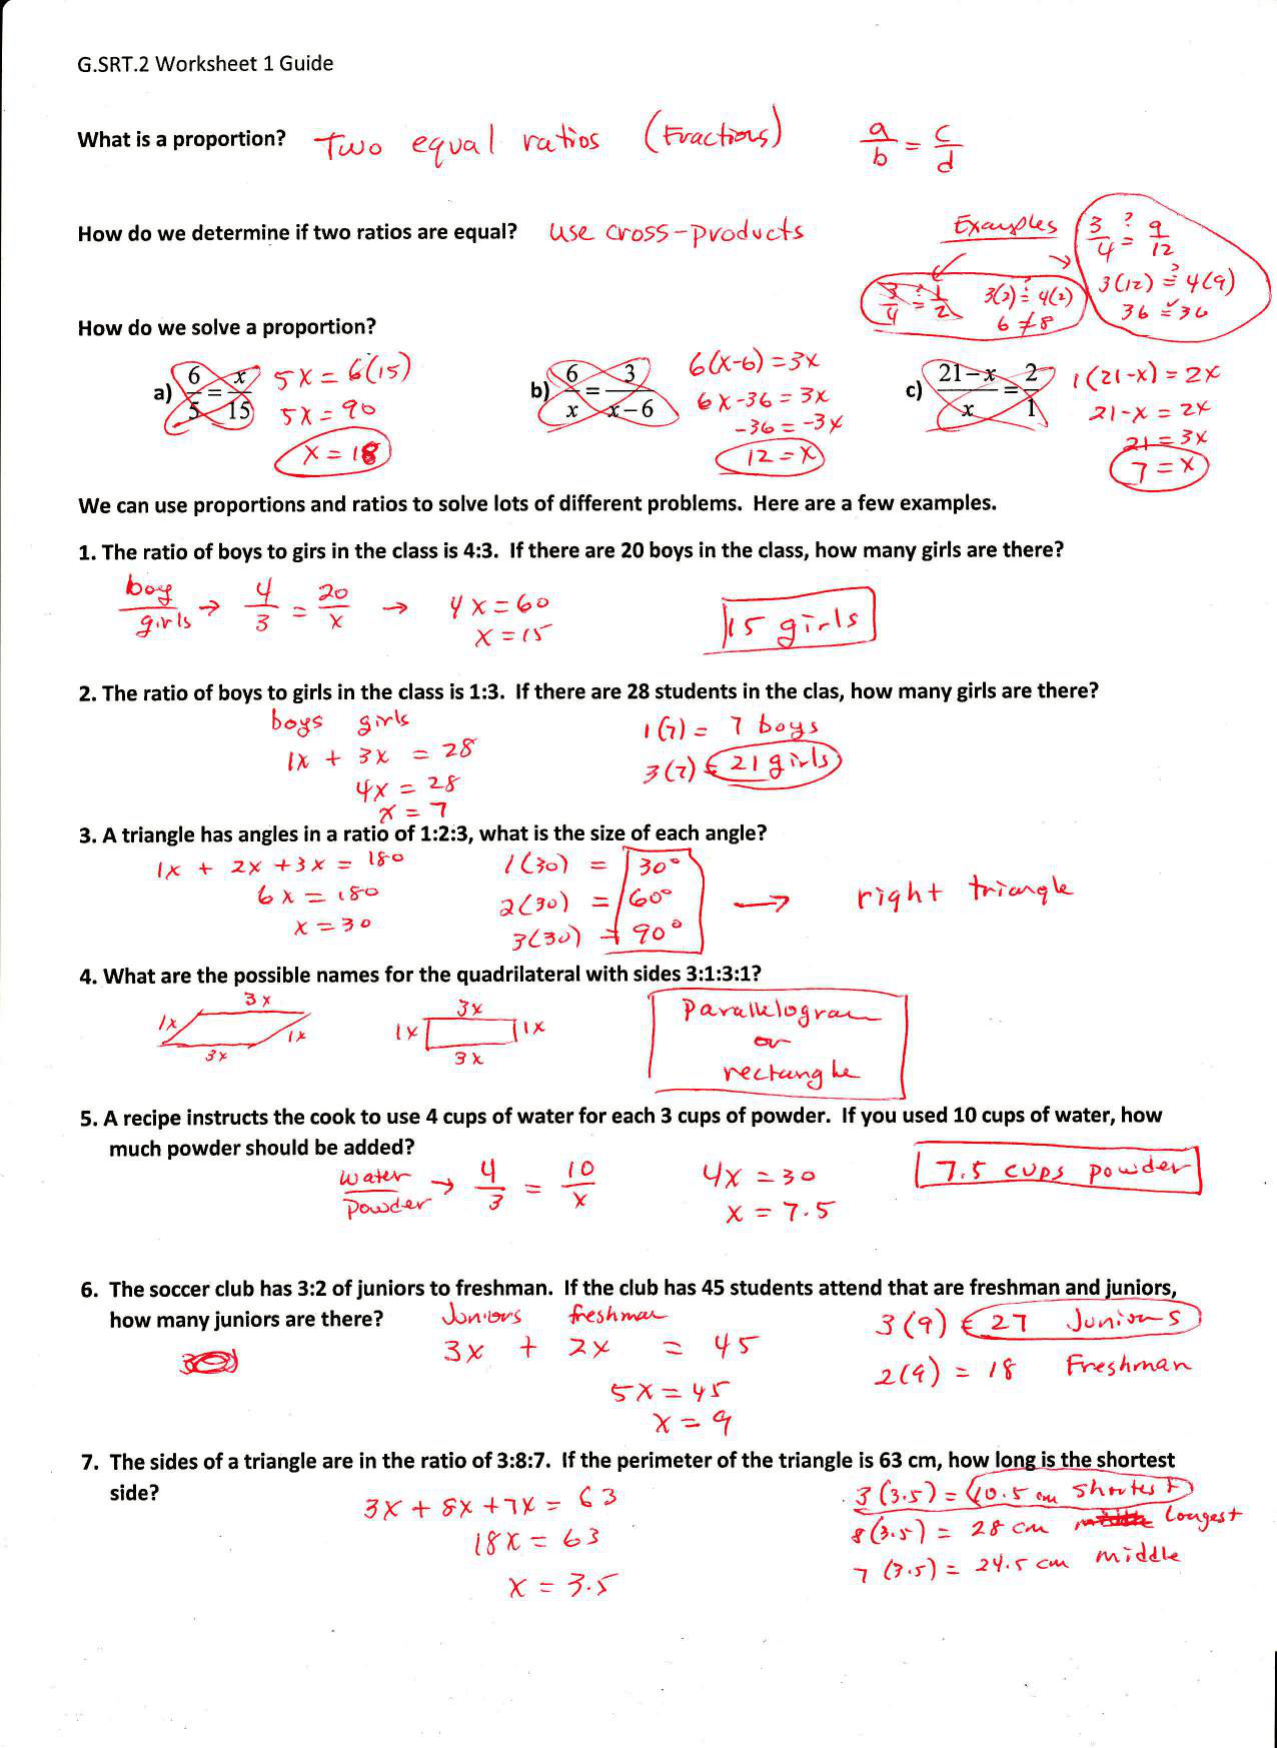 Printables Of G Srt 1 Worksheet 1 Key